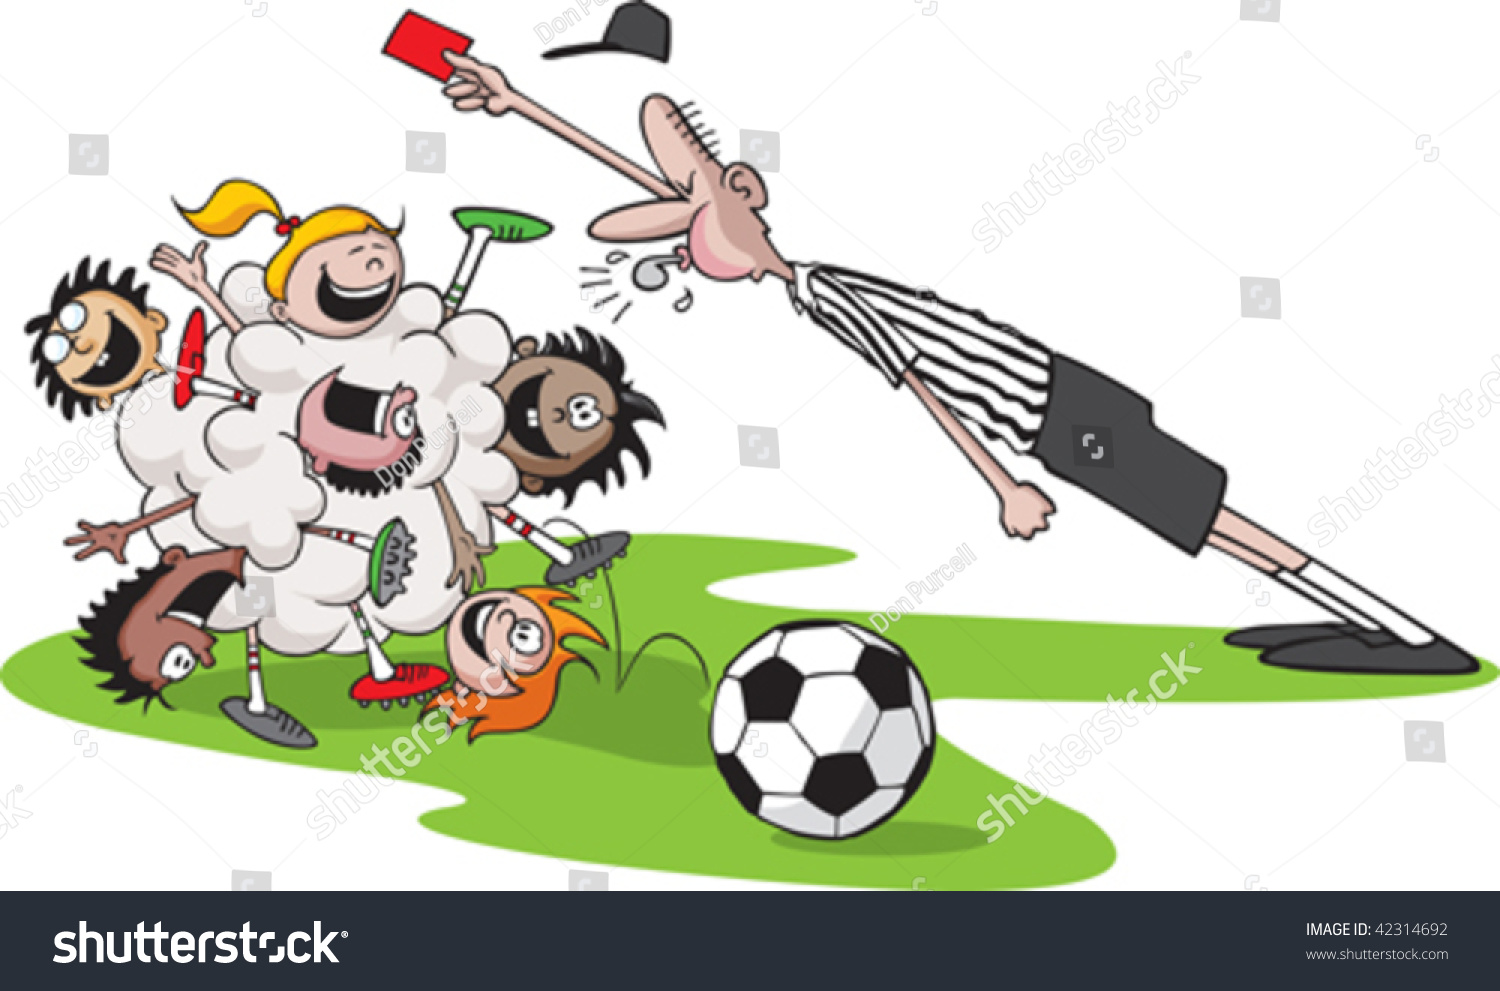 A Vector Cartoon Of Kids Playing Soccer. Kid Bunch,Referee